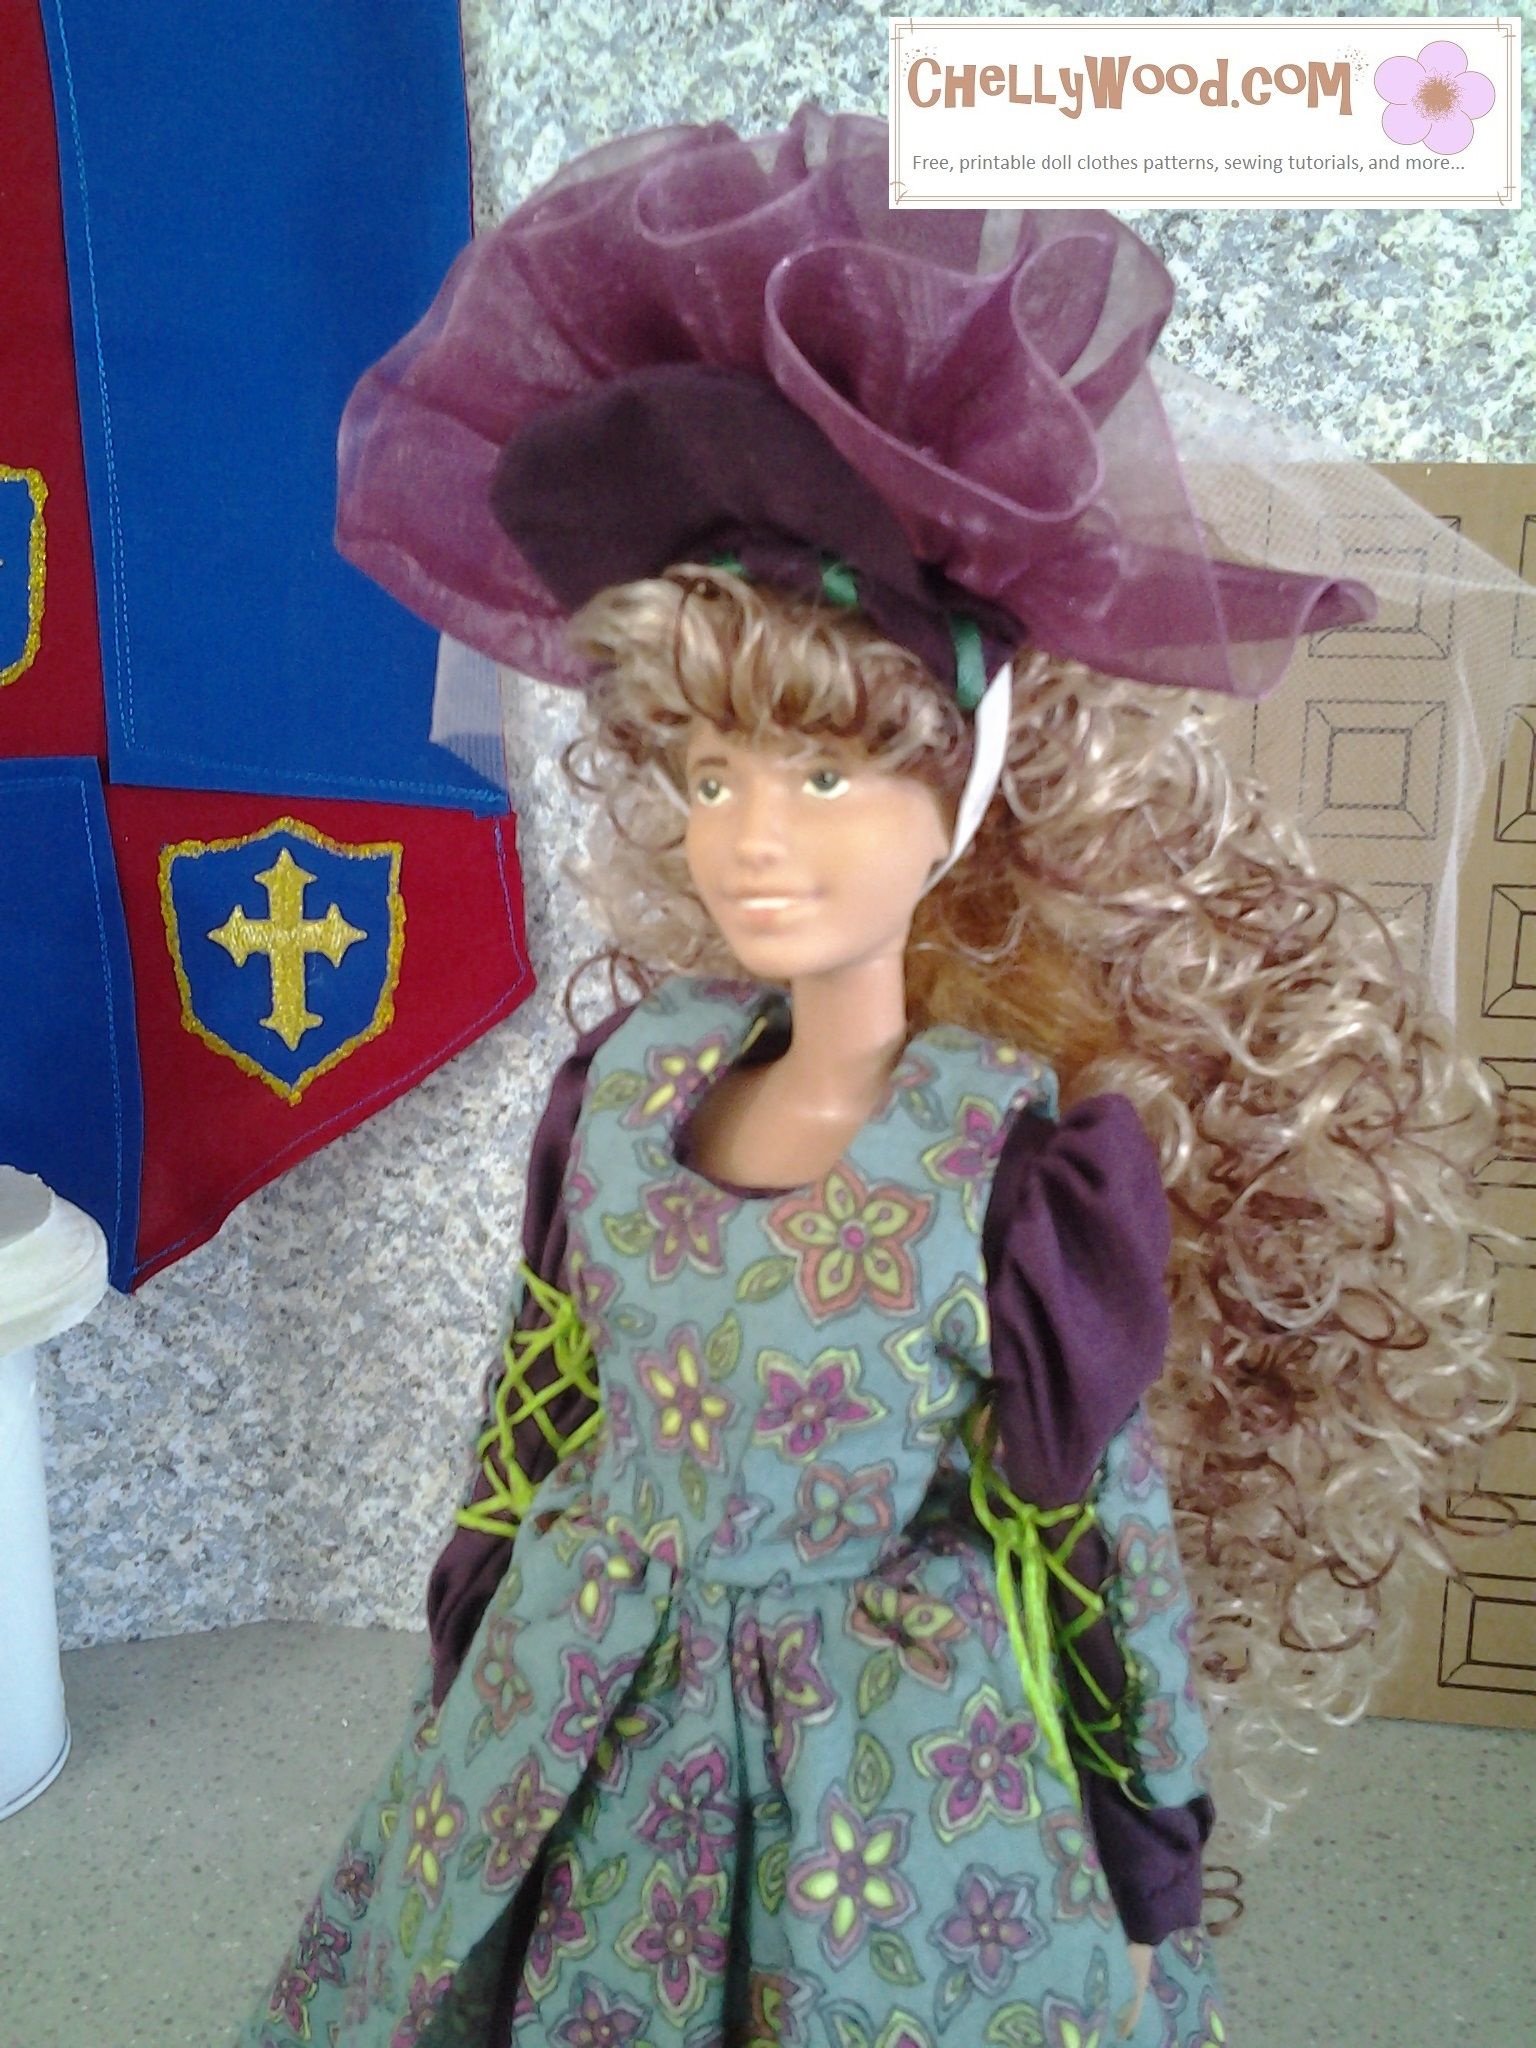 """Here we see a Mattel Barbie wearing a wig of dishwater blond curls that coil down her back. She's also wearing a slightly different version of the Basque ball gown pattern from ChellyWood.com (search for """"Basque"""" to find that yellow dress with tiny red flowers and a snood). On top of this Barbie's head is a burgundy-colored tiara that's framed in wine-colored tulle. It's held on her head by a thin piece of elastic."""